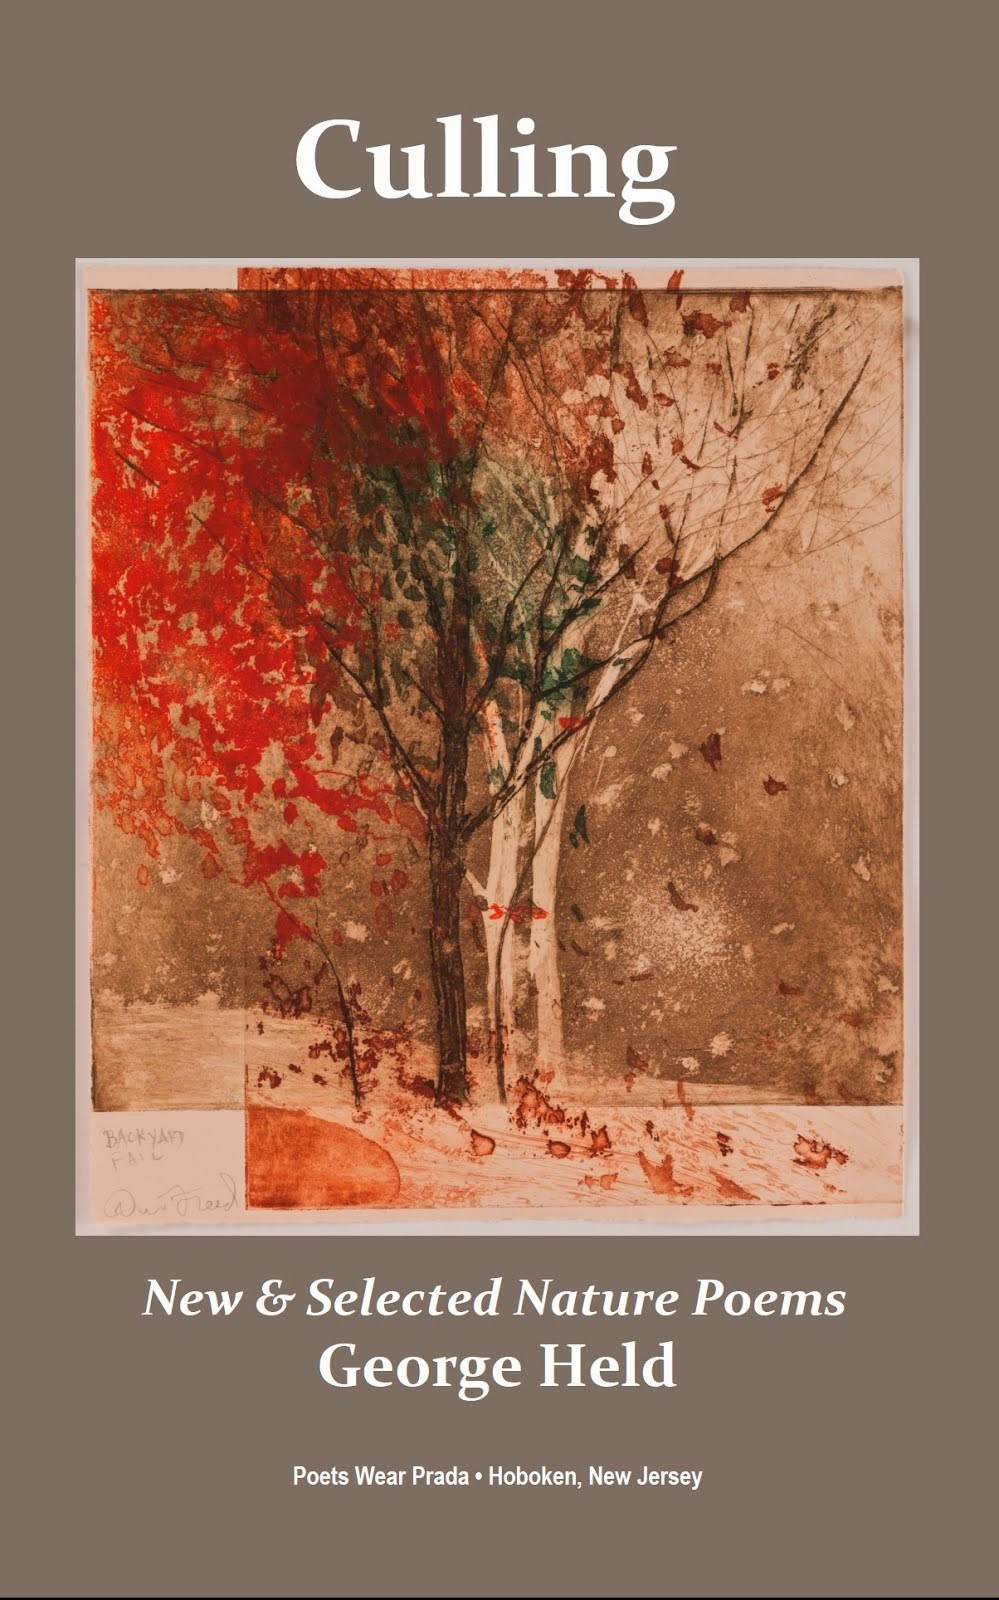 CULLING: NEW & SELECTED NATURE POEMS by George Held